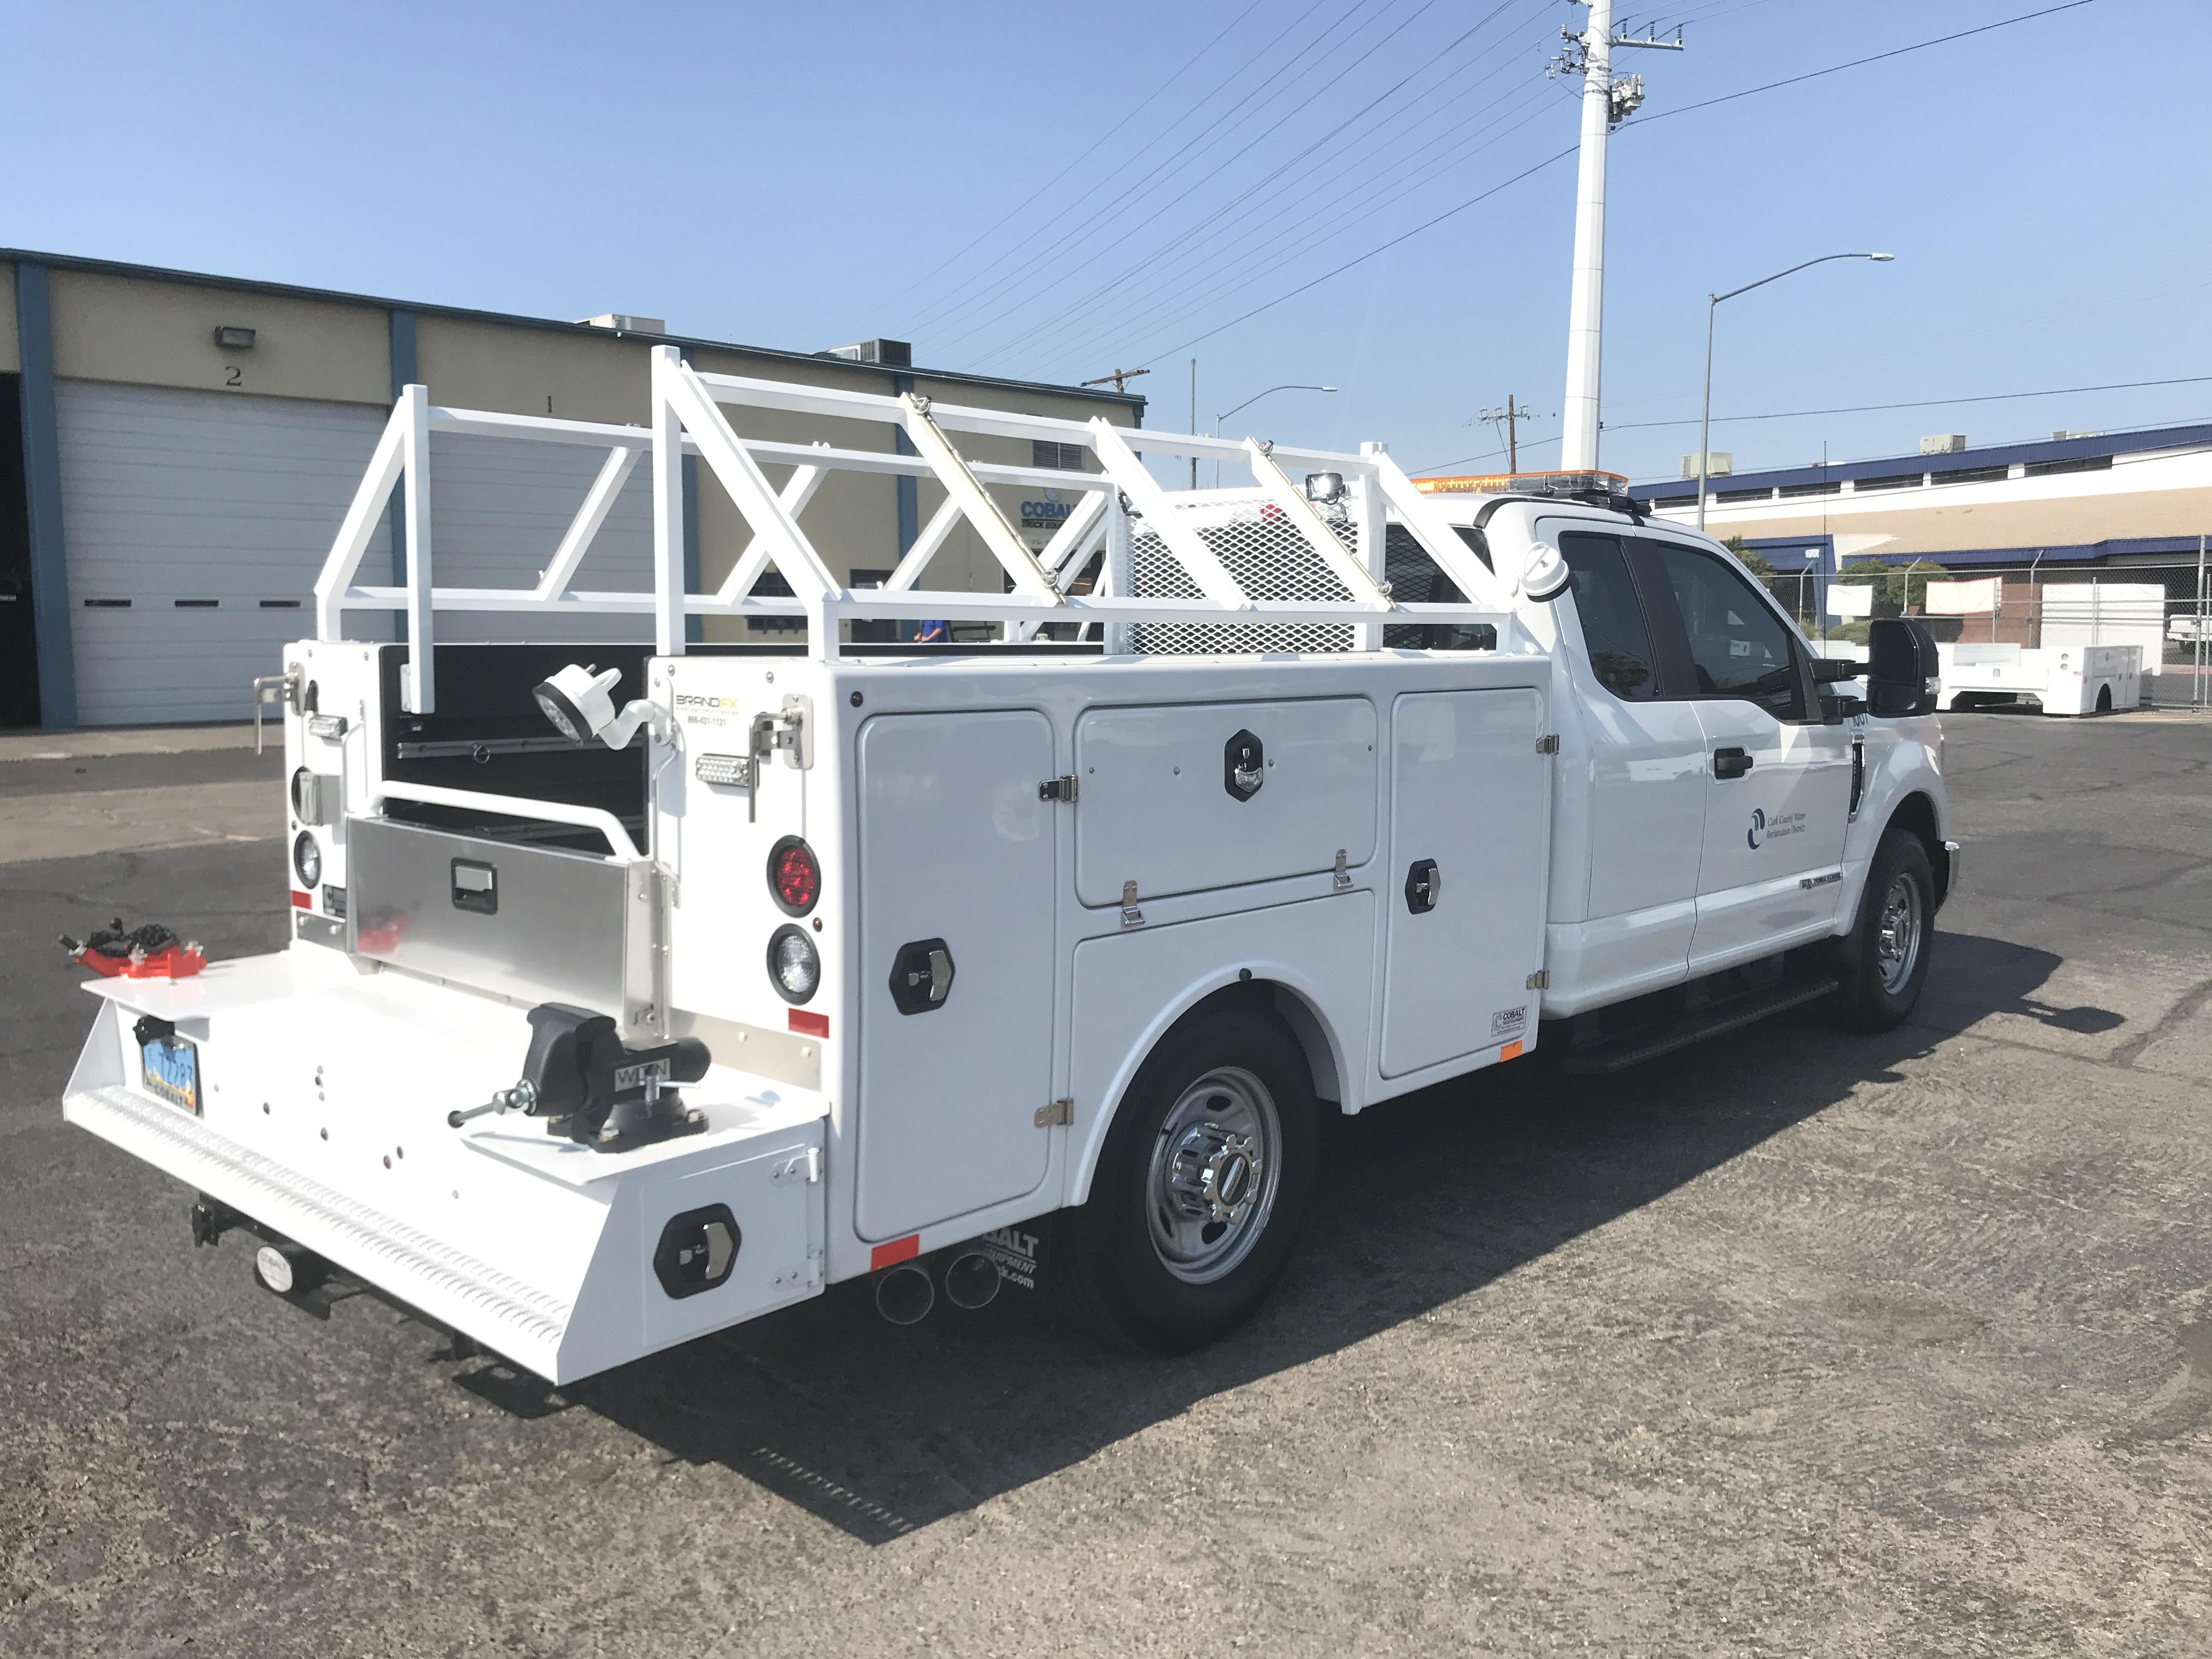 This Brandfx Service Body Is Complete With A Slide N Lock Cargo Management System And An Epic Custom Ladder Rack Custom Truck Beds Work Truck Built Truck